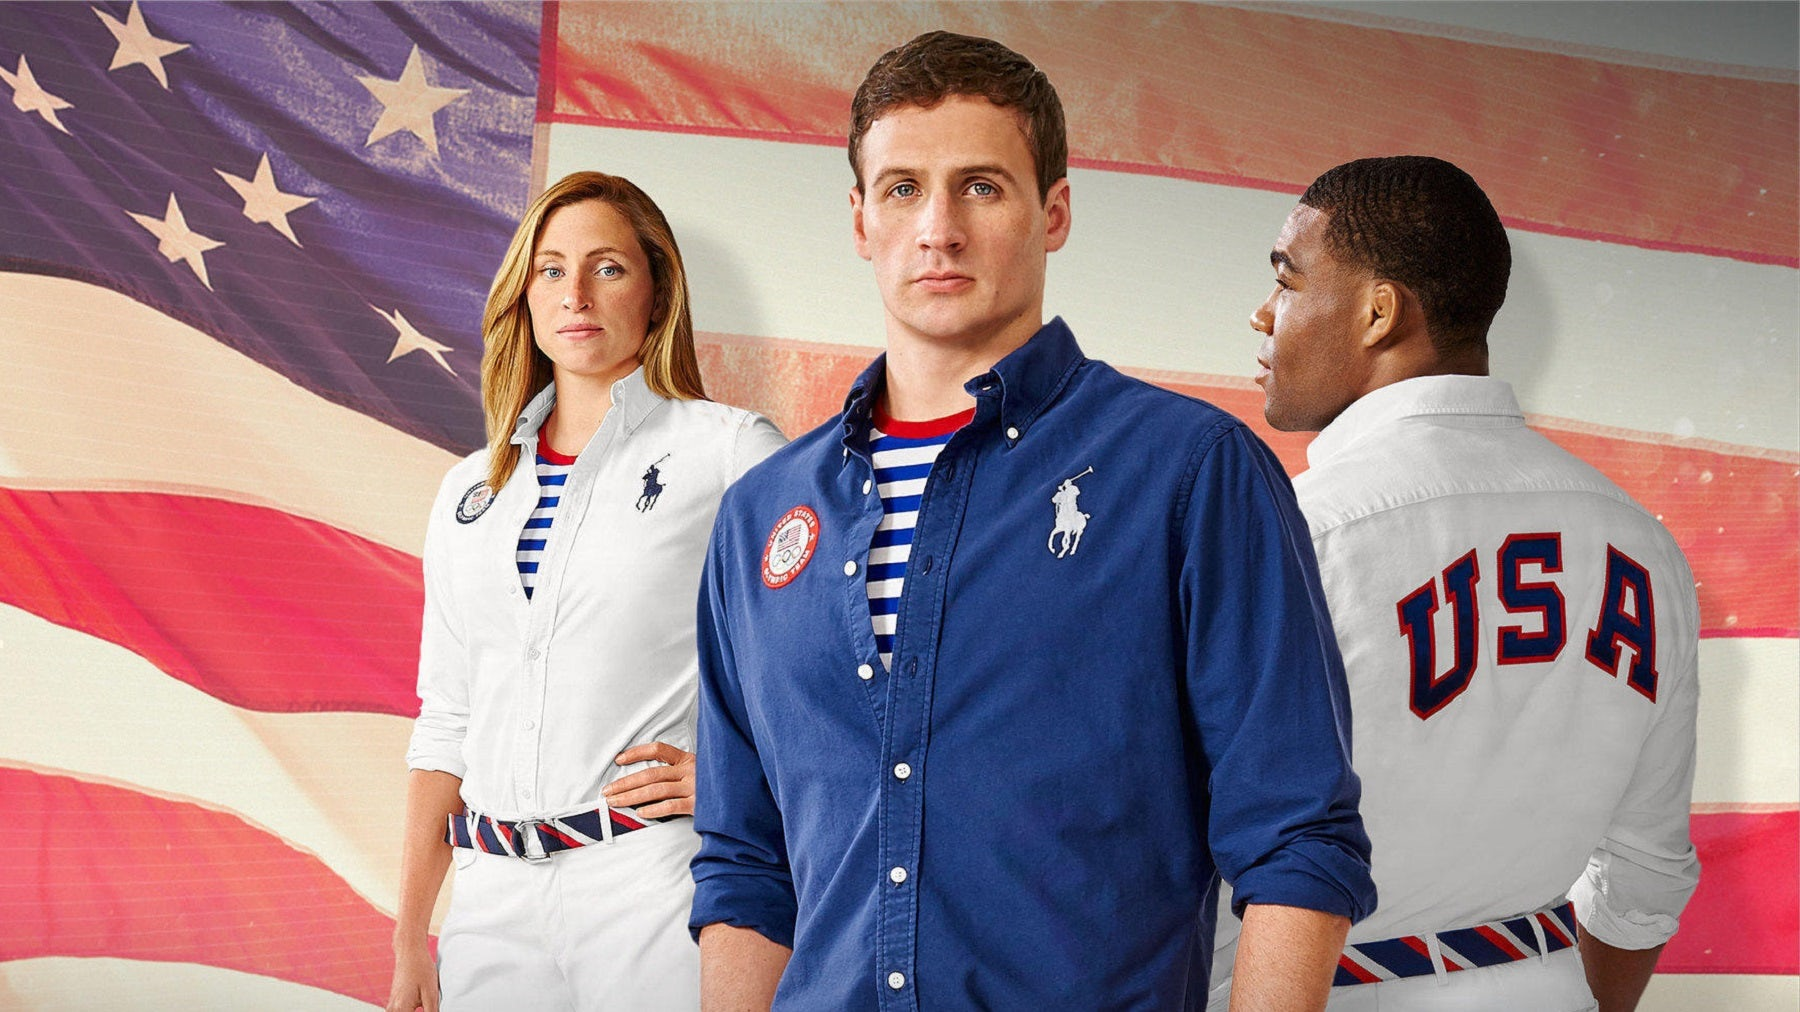 Team USA Olympic uniforms 2016 by Polo Ralph Lauren | Source: Courtesy